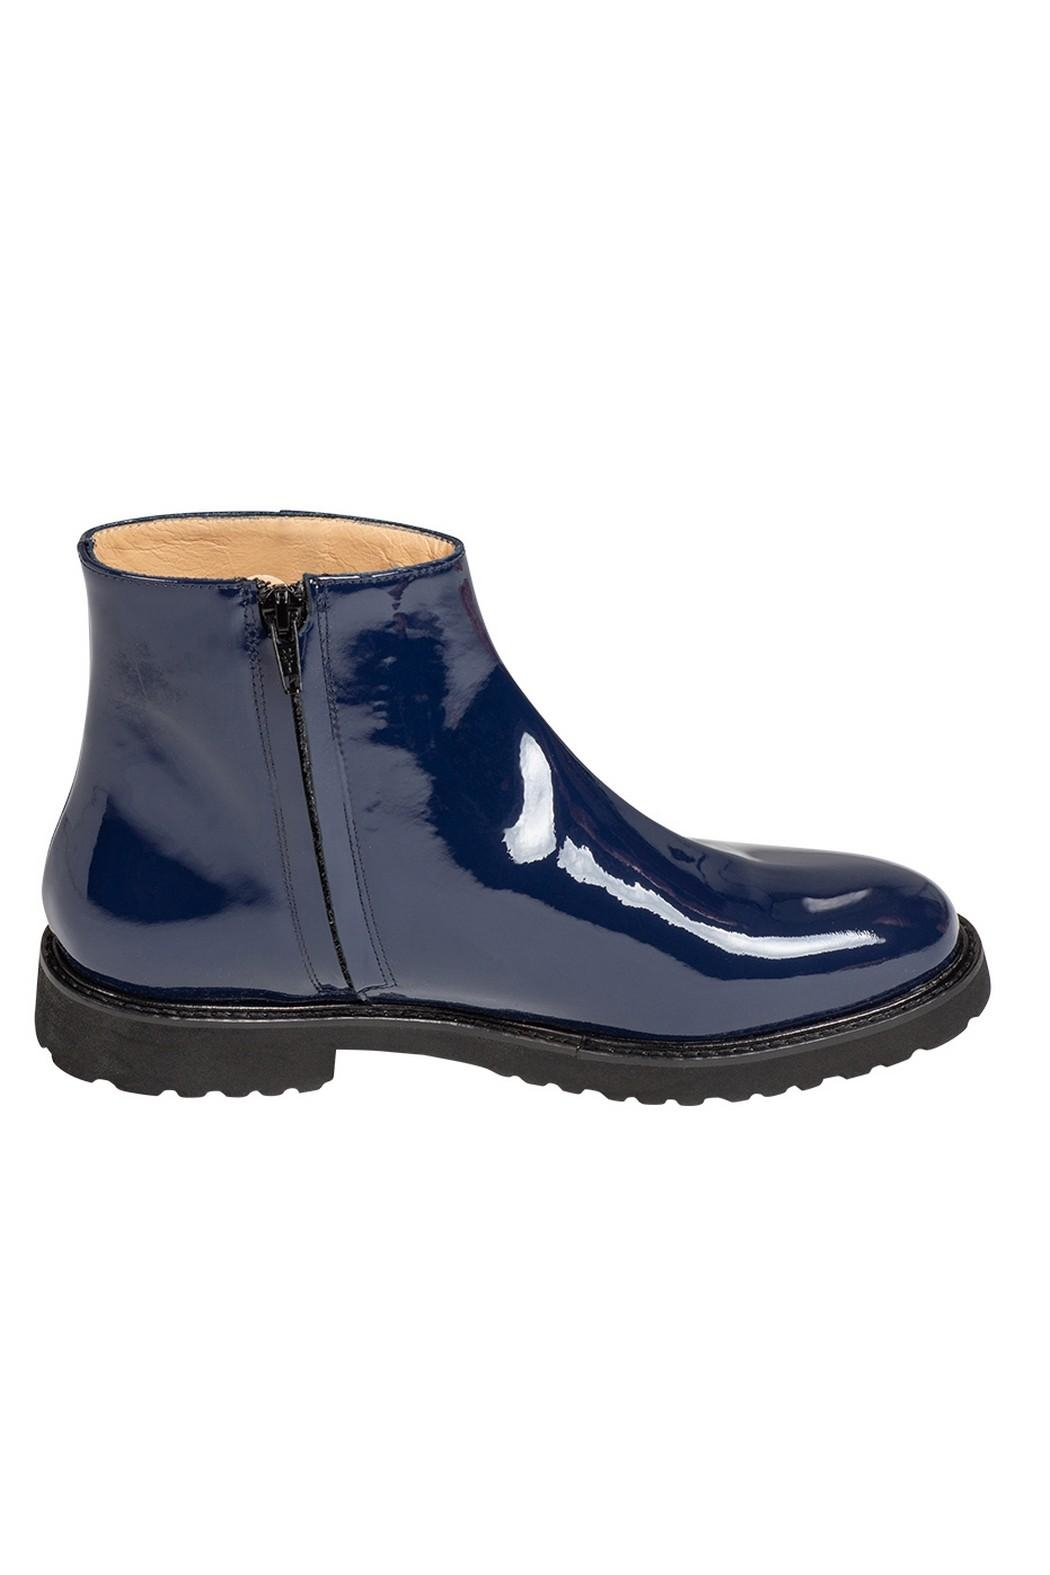 Pascucci Cobalt-Blue Patent-Leather Ankle-Boots - Side Cropped Image